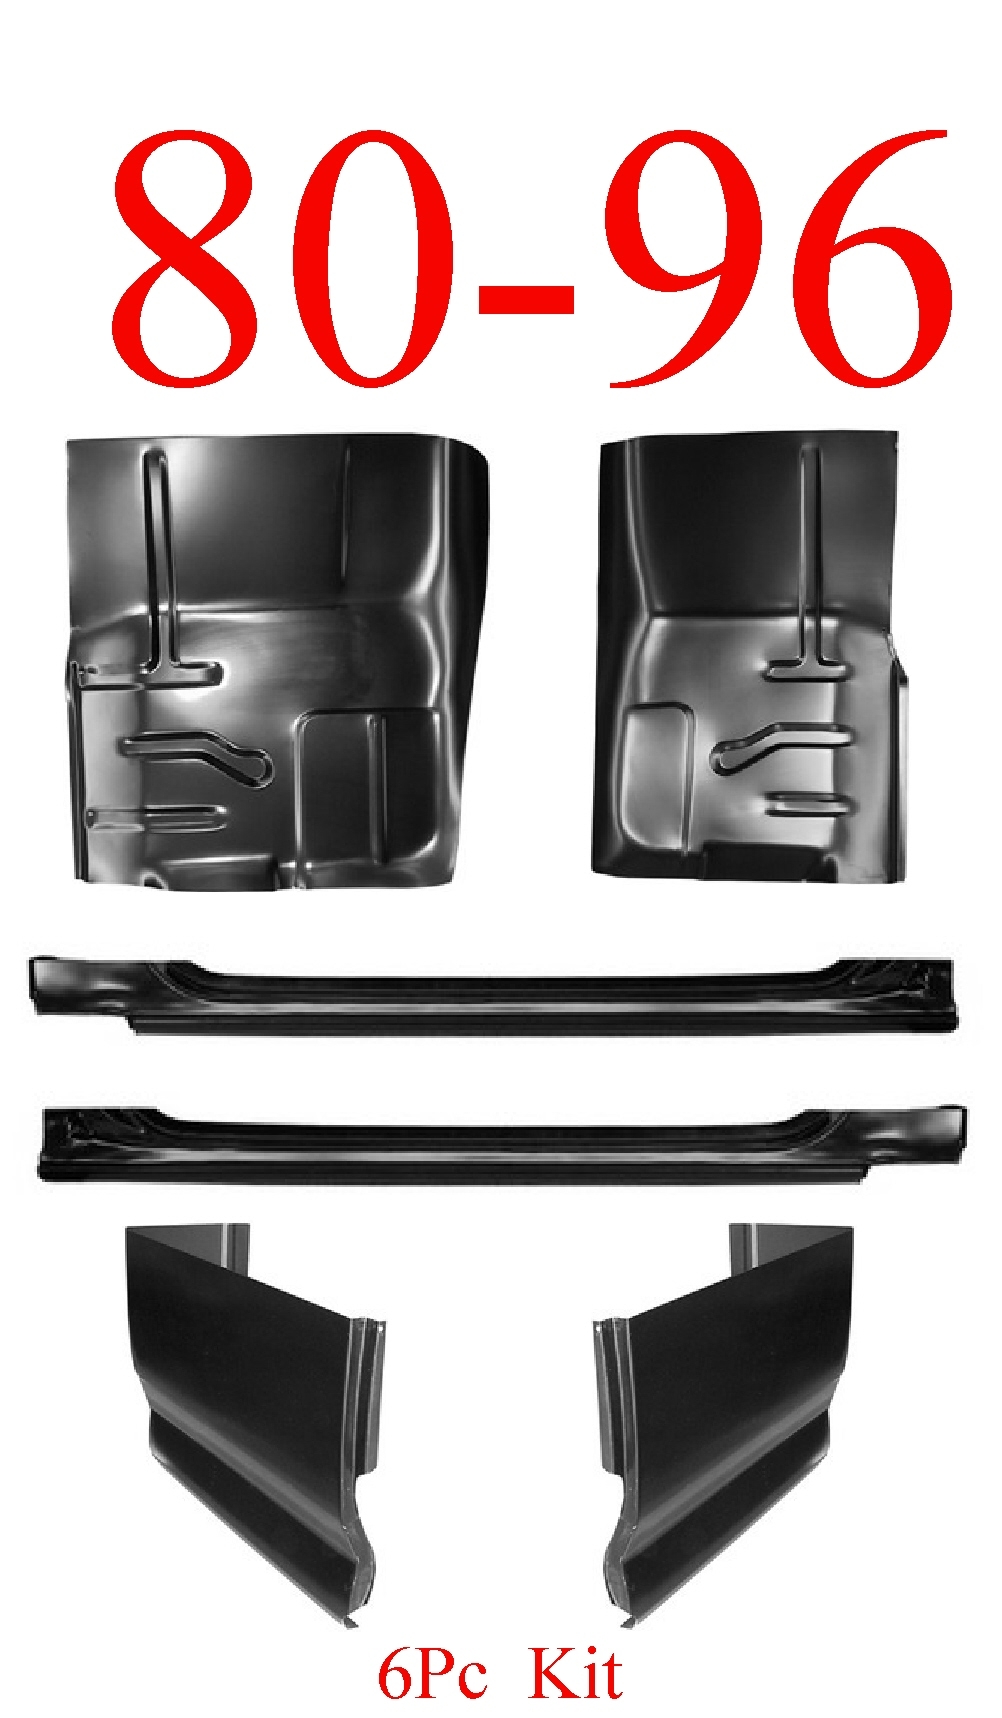 80-96 Ford 6Pc Slip-On Rocker, Extended Cab Corner & Floor Kit